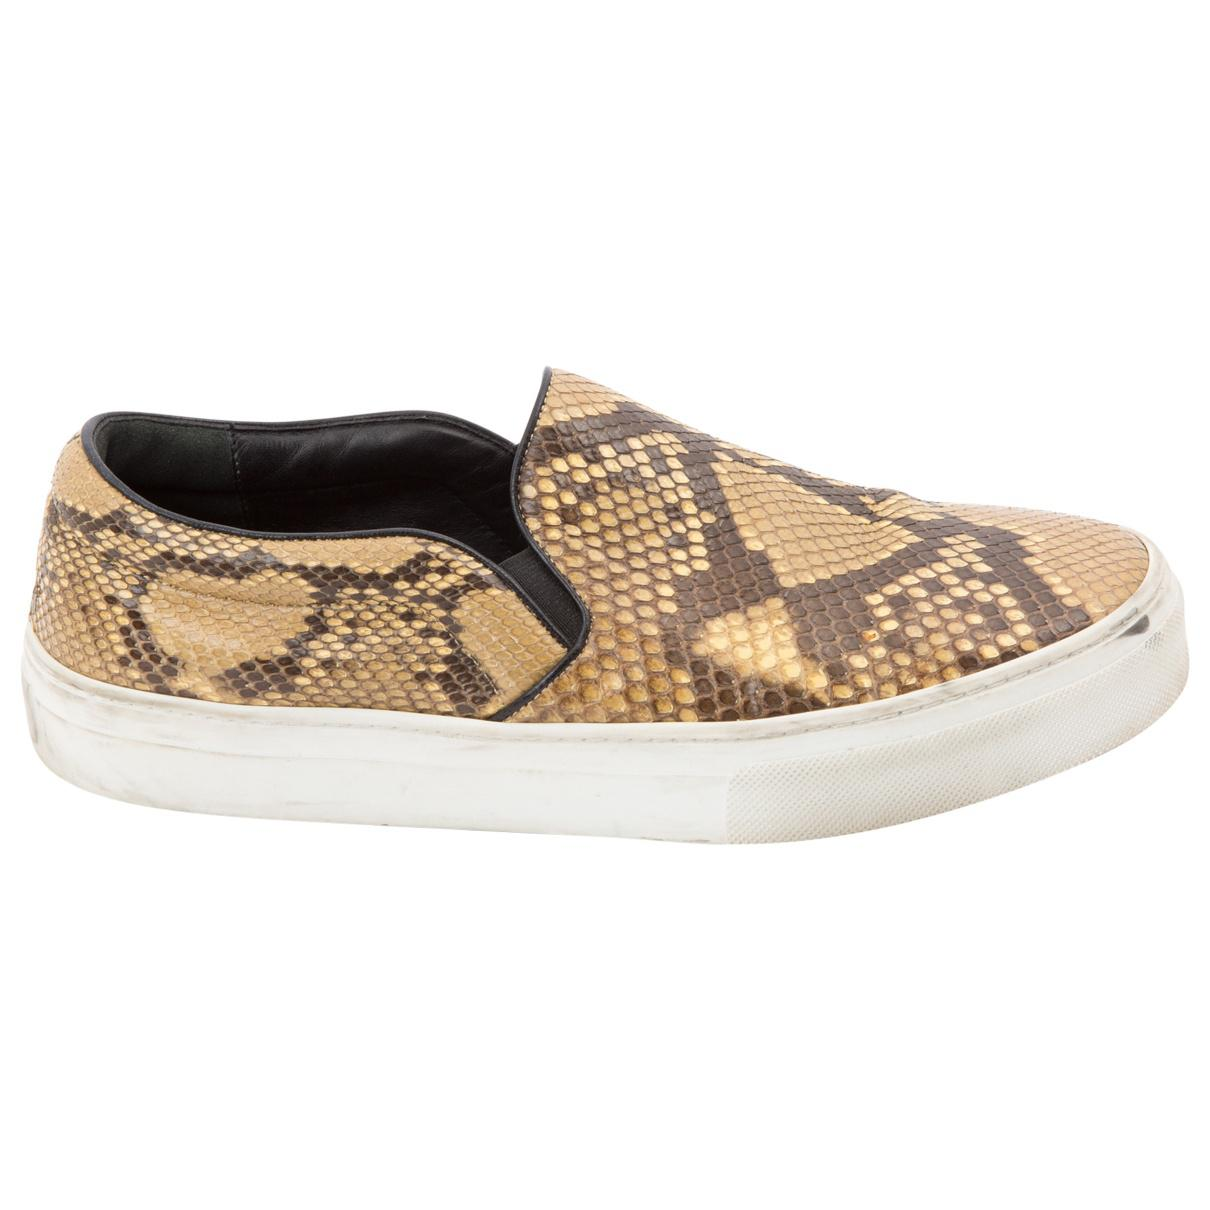 Pre-owned - Python trainers Celine 6zlFlnUl